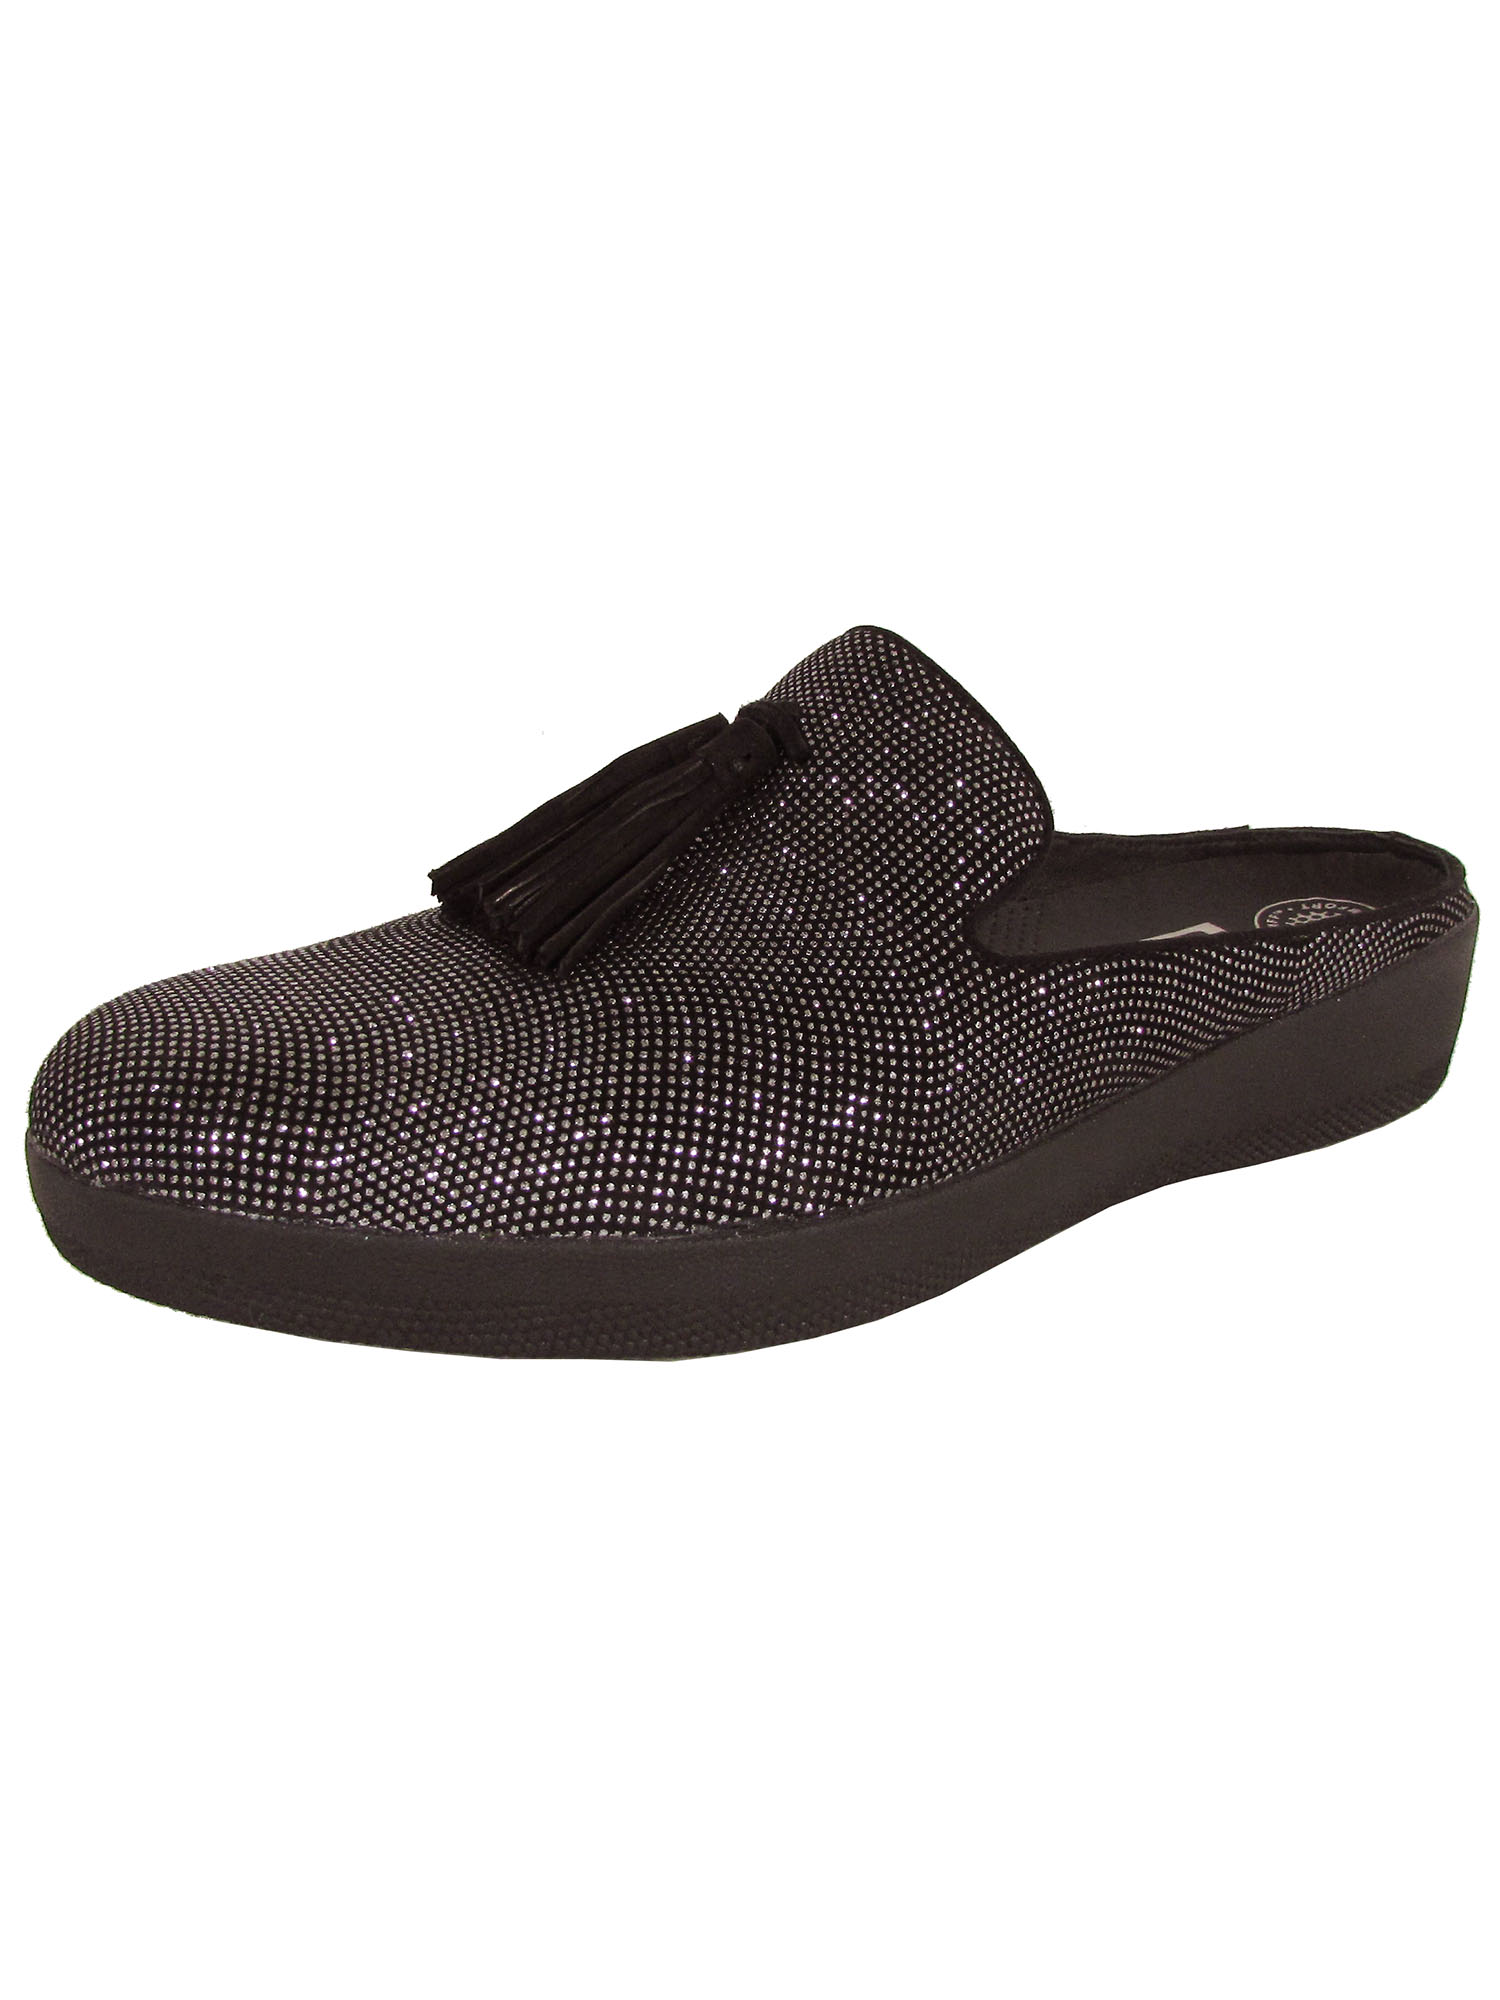 5cc2baa7d247a FitFlop - Fitflop Womens Superskate Slip Ons Tassel Mule Shoes ...